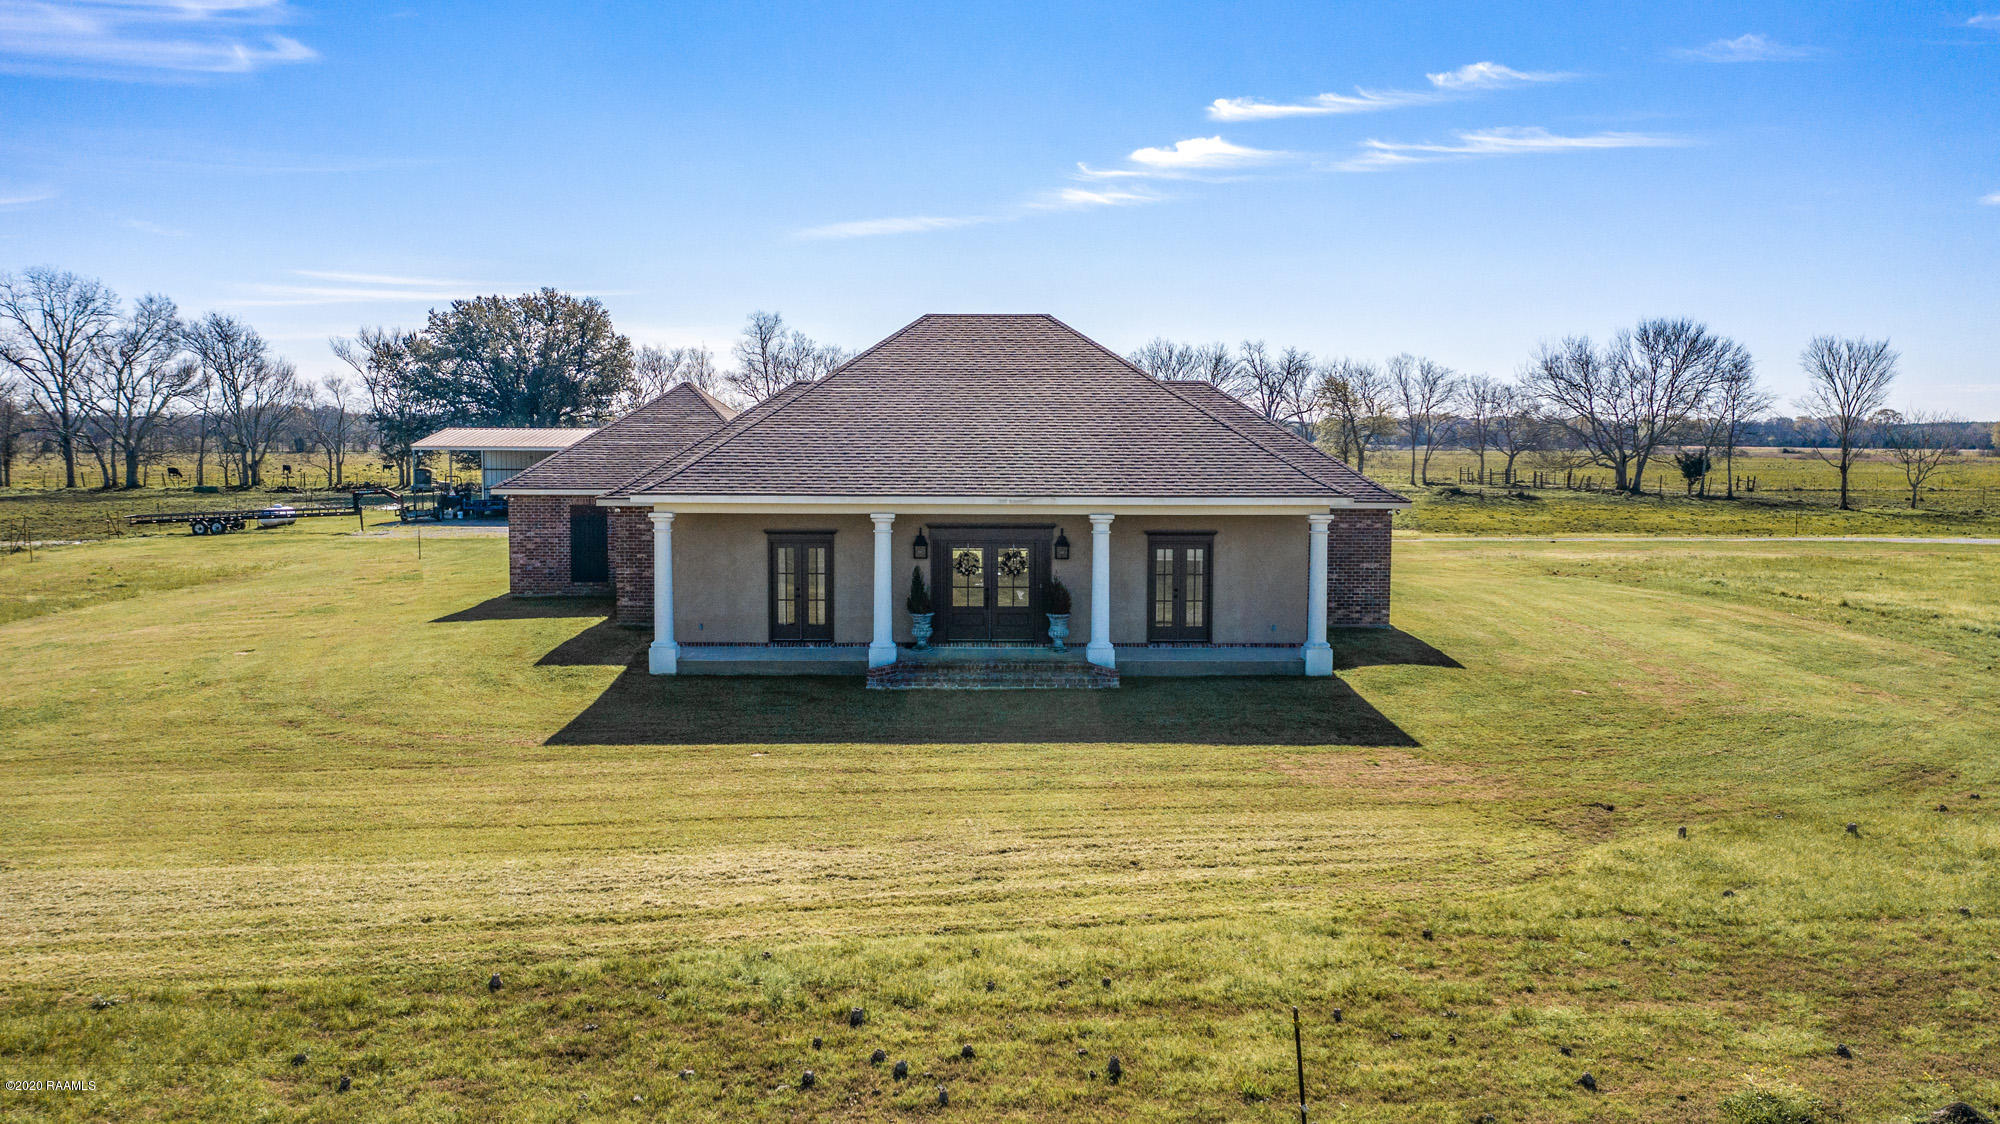 818 L'Anse De Cavailer Road, Ville Platte, LA 70586 Photo #1